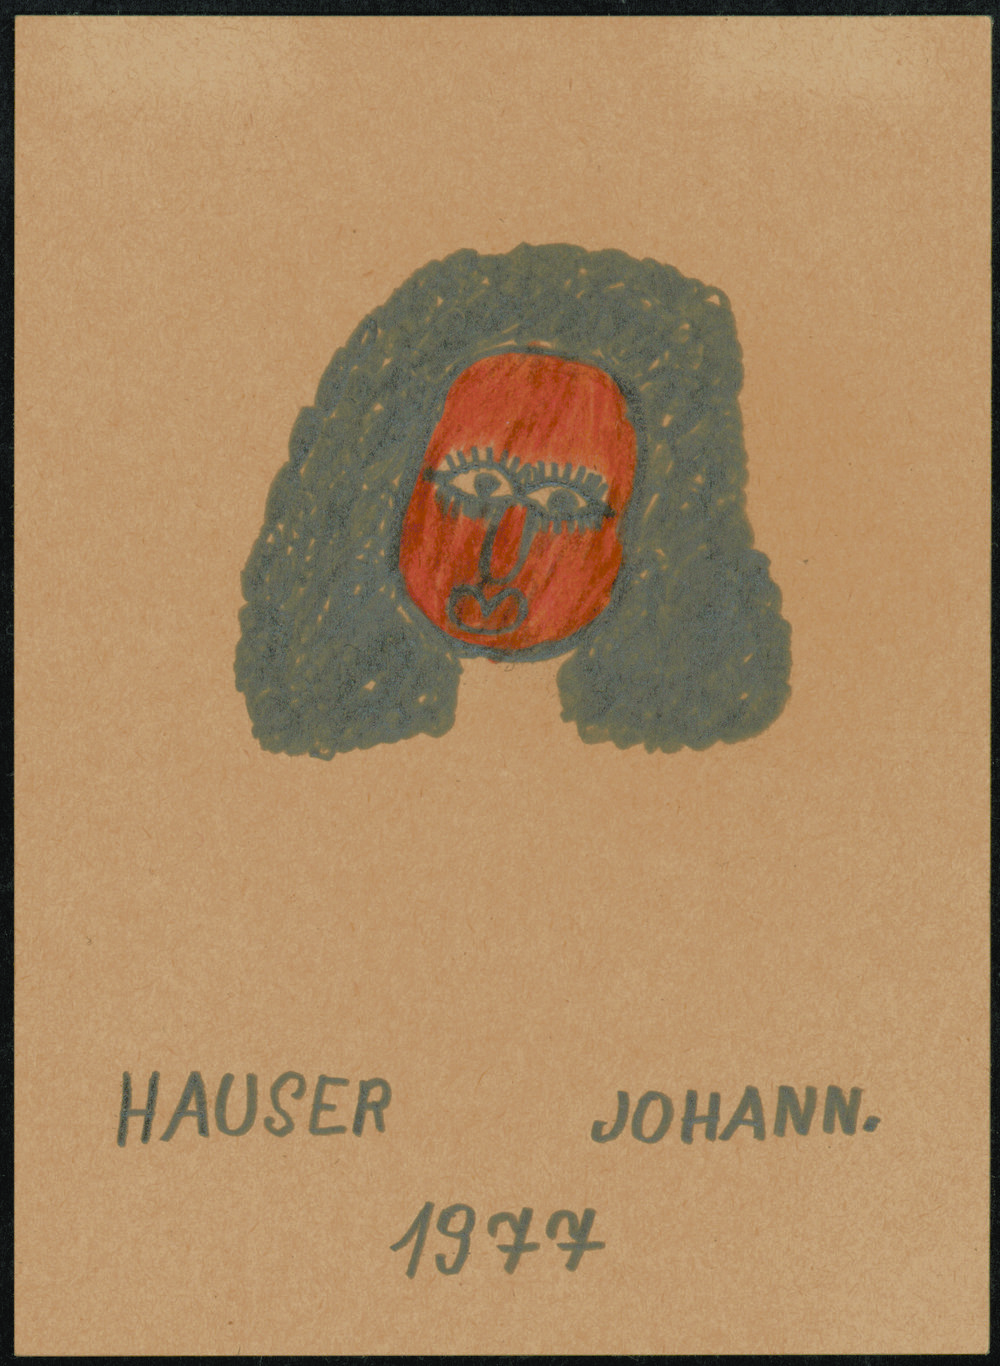 Johann Hauser (Austrian, 1926-1996).  Head of Woman with Red Face , 1977. Pencil and crayon on paper, 5 ¾ x 4 1/8 in. Intuit: The Center of Intuitive and Outsider Art, gift of John M. MacGregor in honor of Robert A. Roth, 2004.7.2